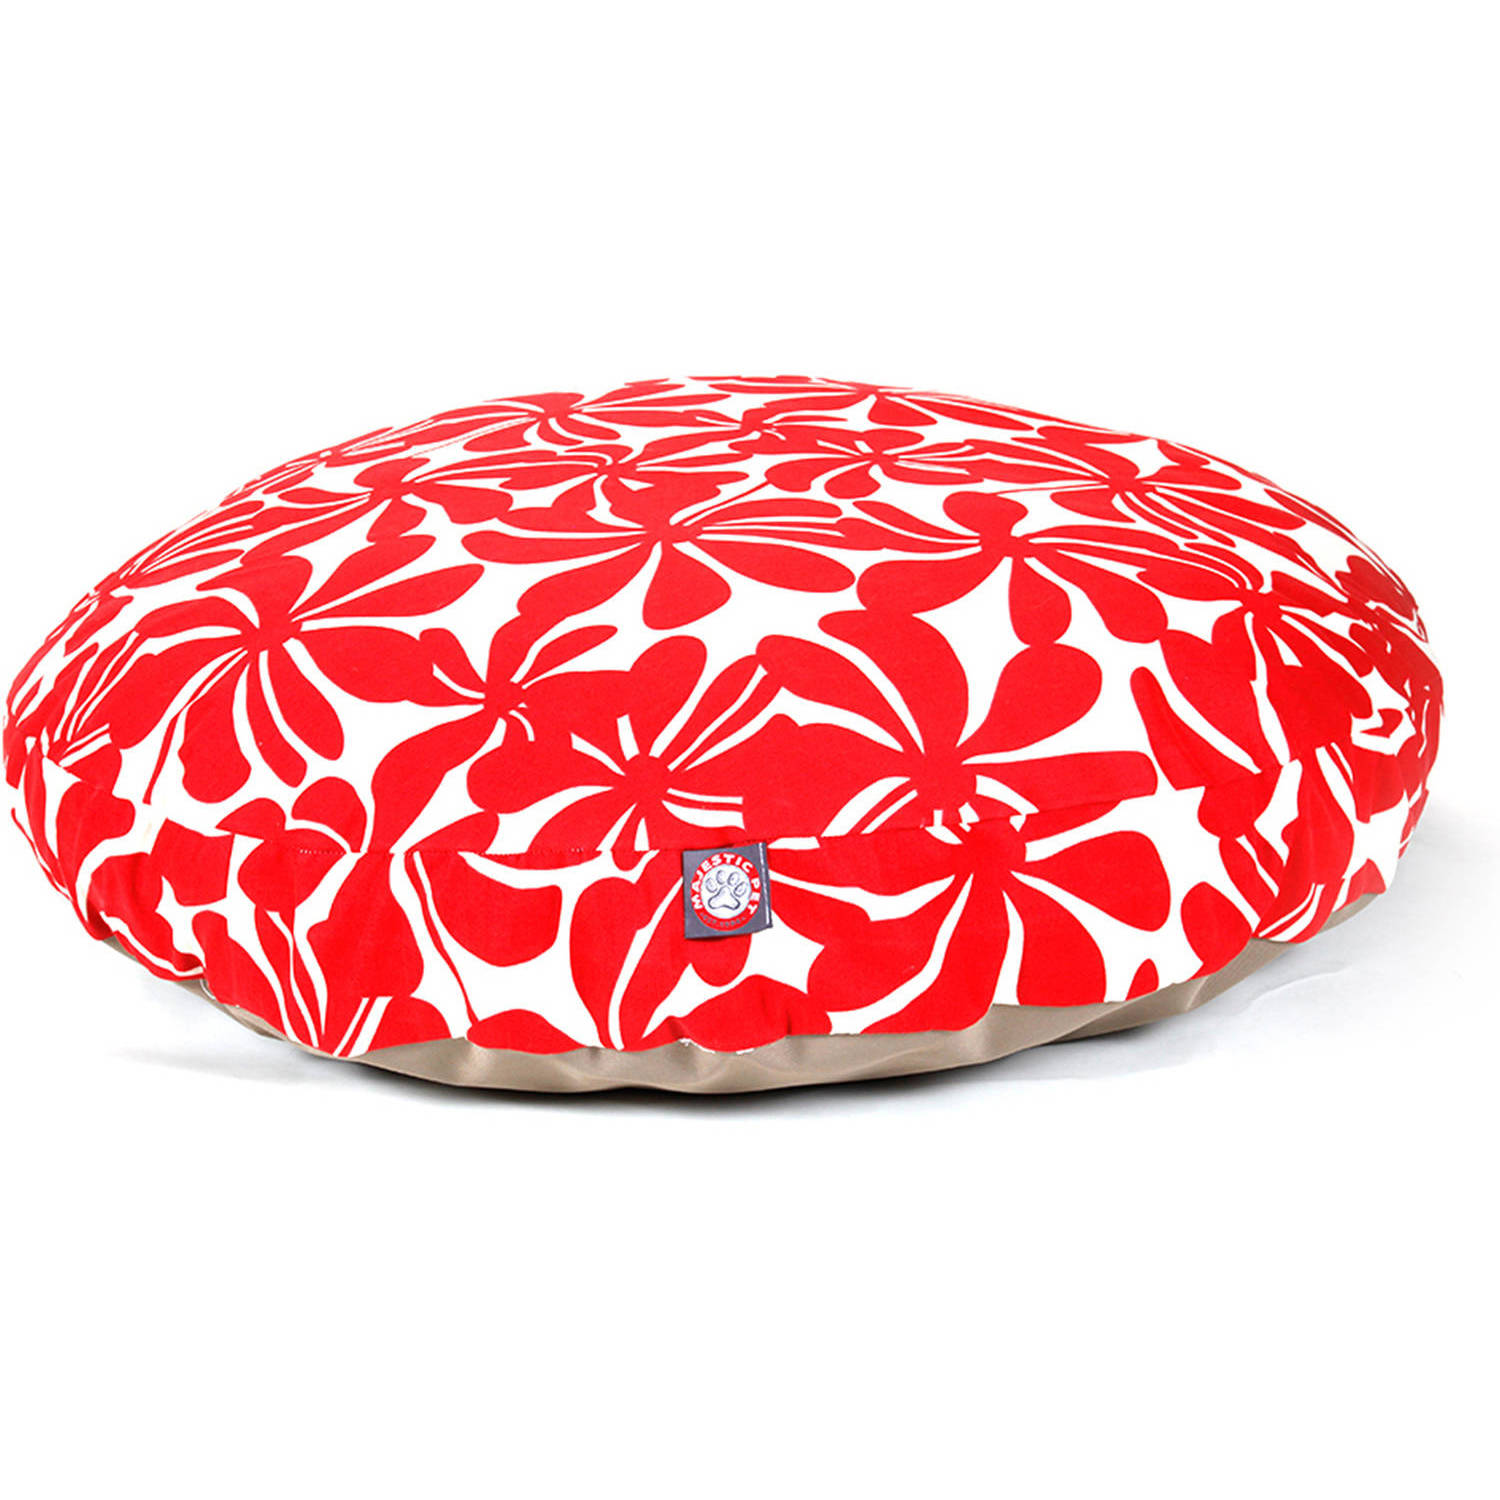 Majestic Pet Products Plantation Round Outdoor Indoor Pet Bed Removable Cover